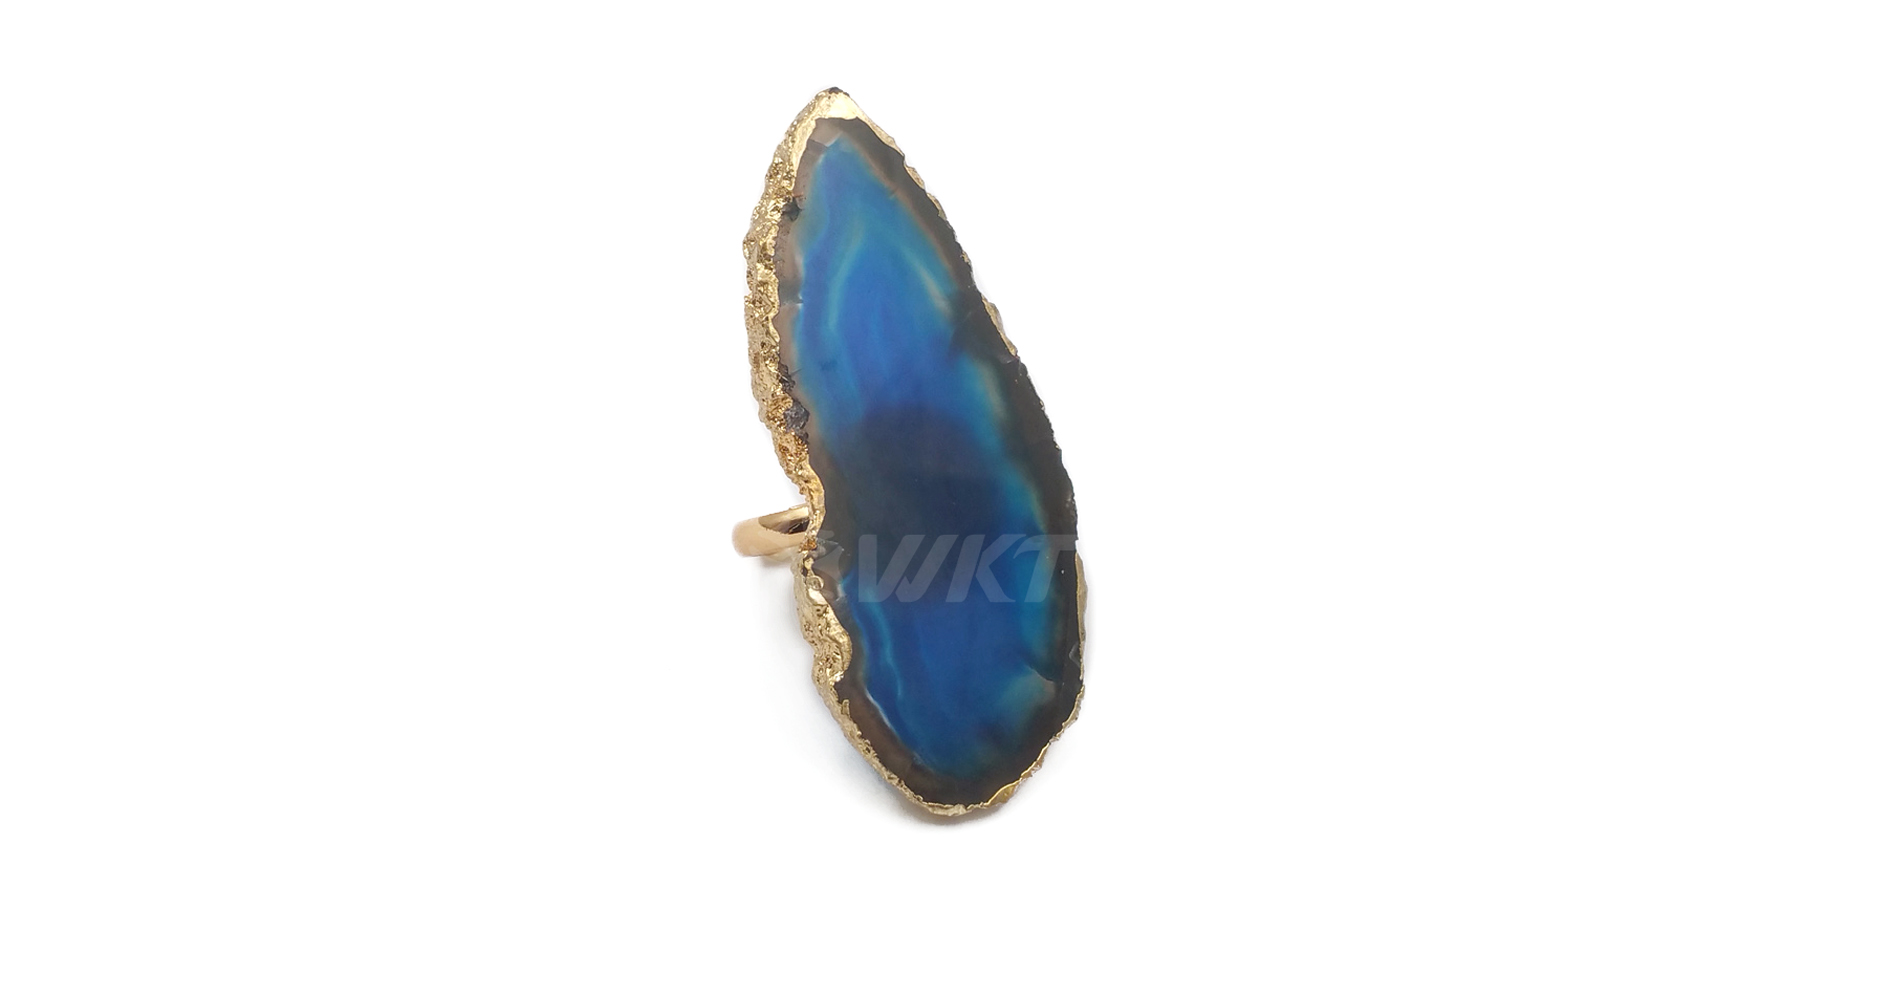 WT-R330 Hot sale Multicolor gemstone With 18k Gold plated Irregular Shape and Random send color Jewelry Natural Slice Agate Ring